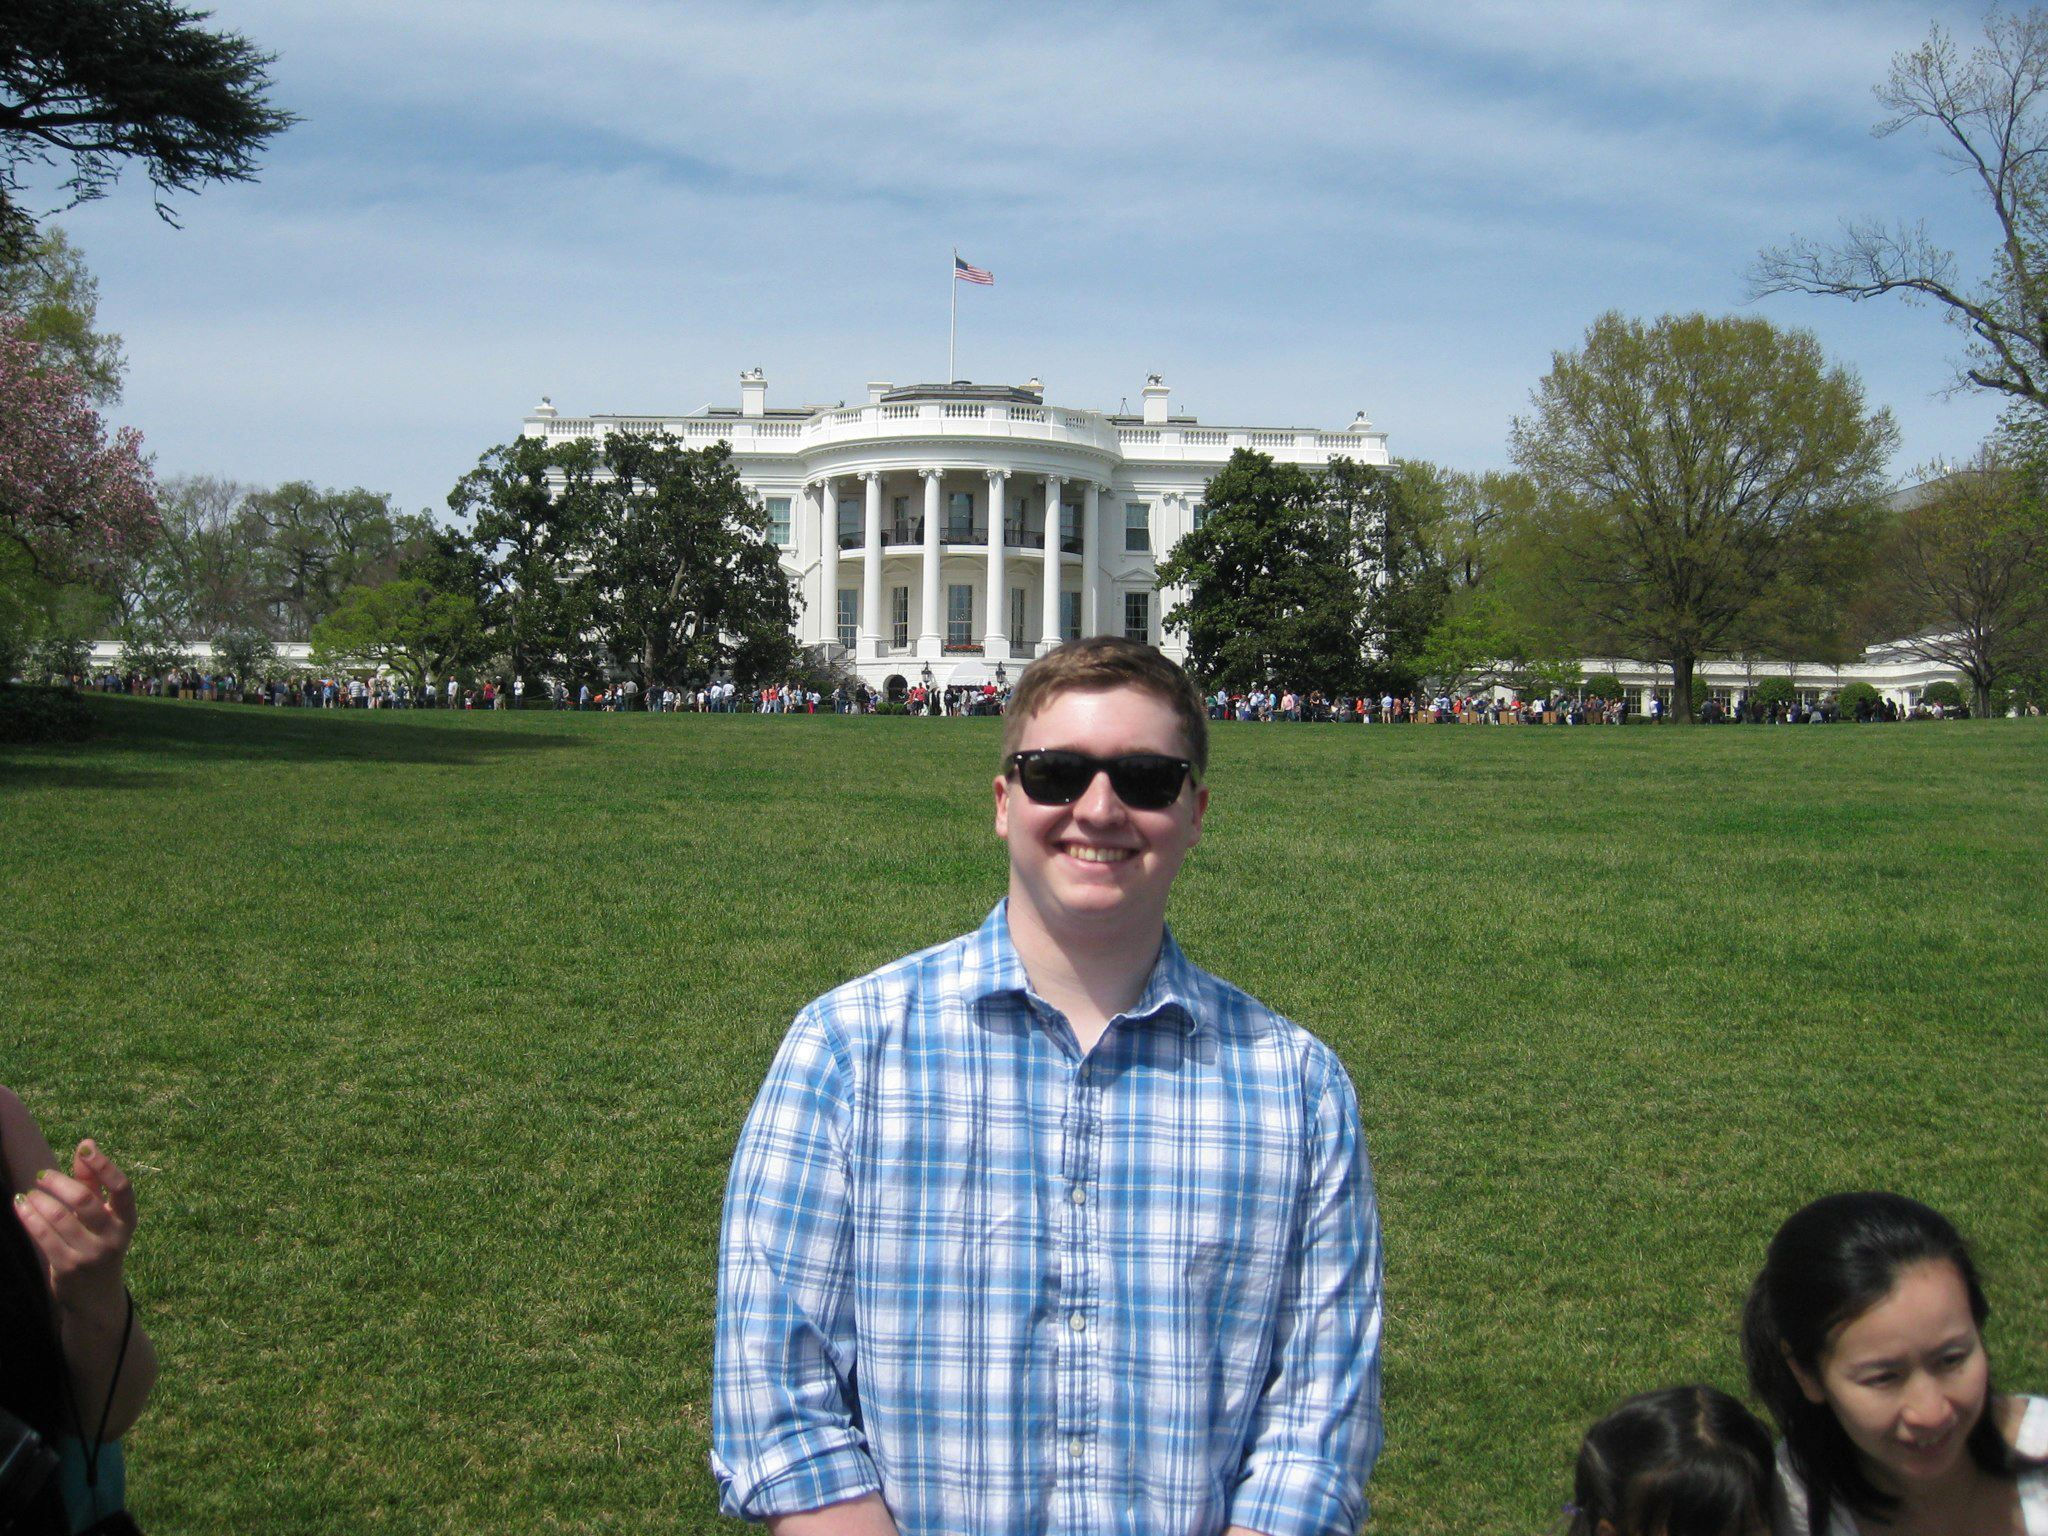 Jeff Sobotko '14 in front of the White House.